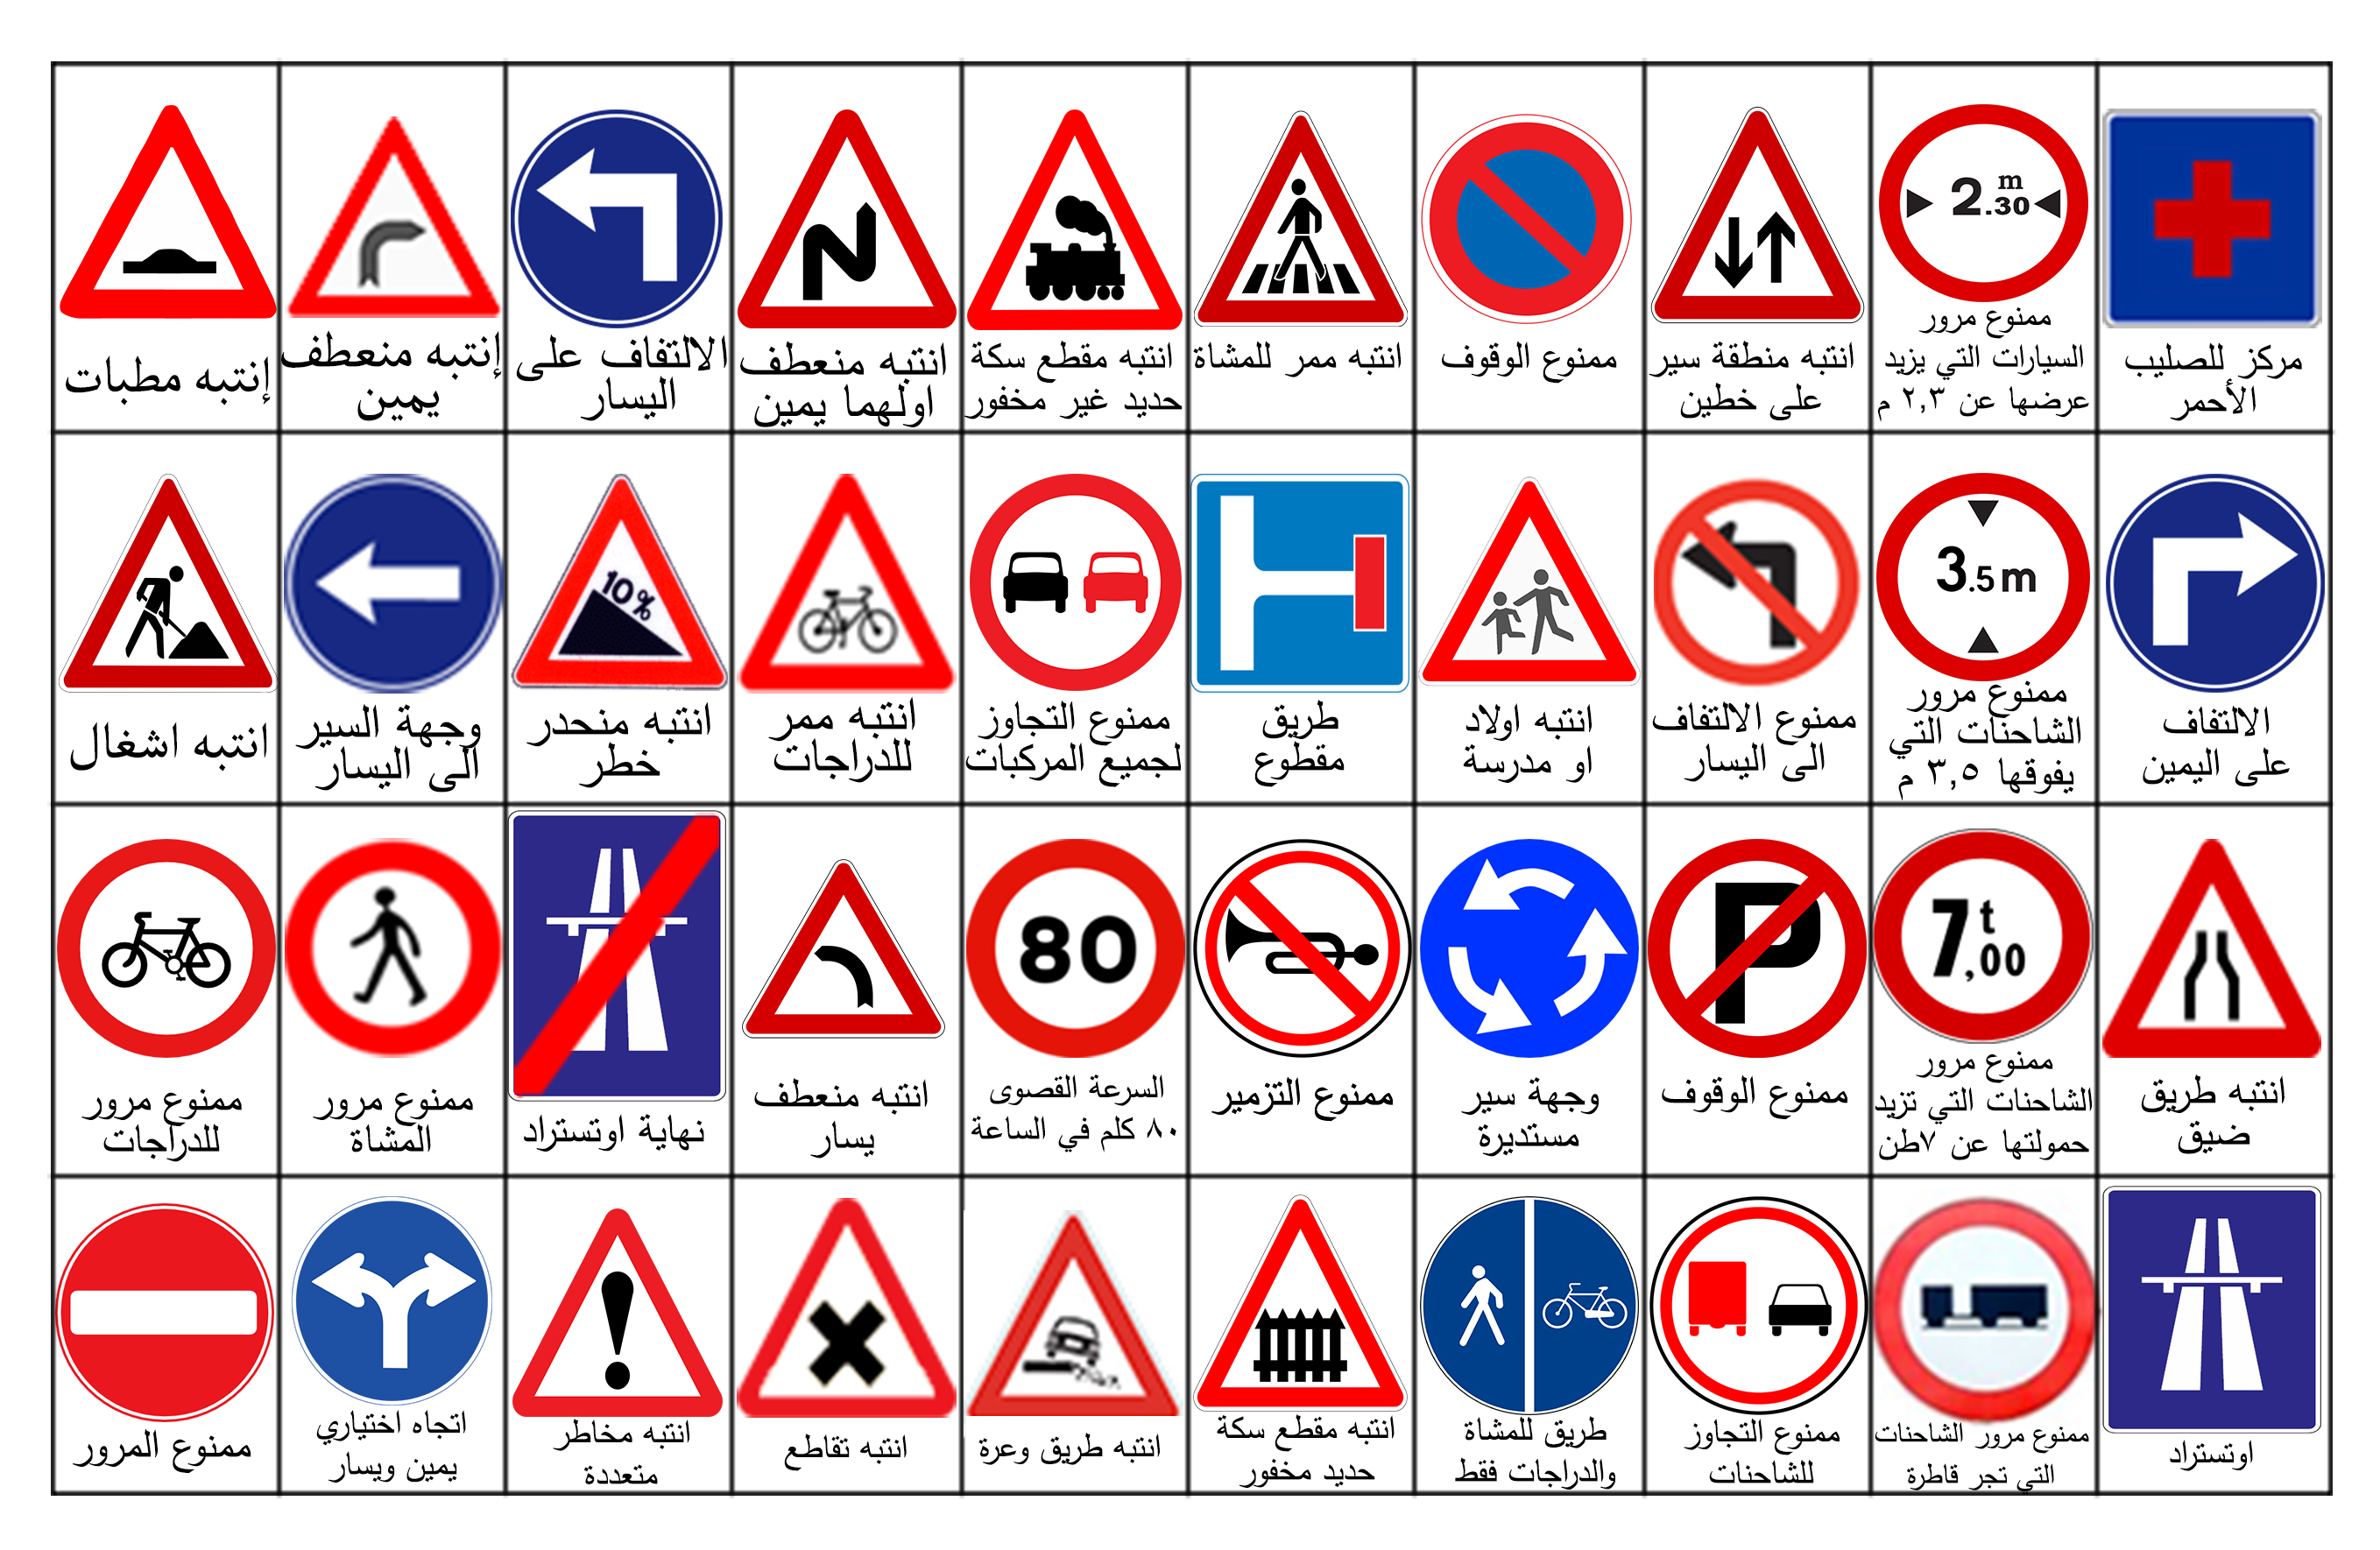 Road Signs Images And Meanings >> Traffic Signs - Cliparts.co